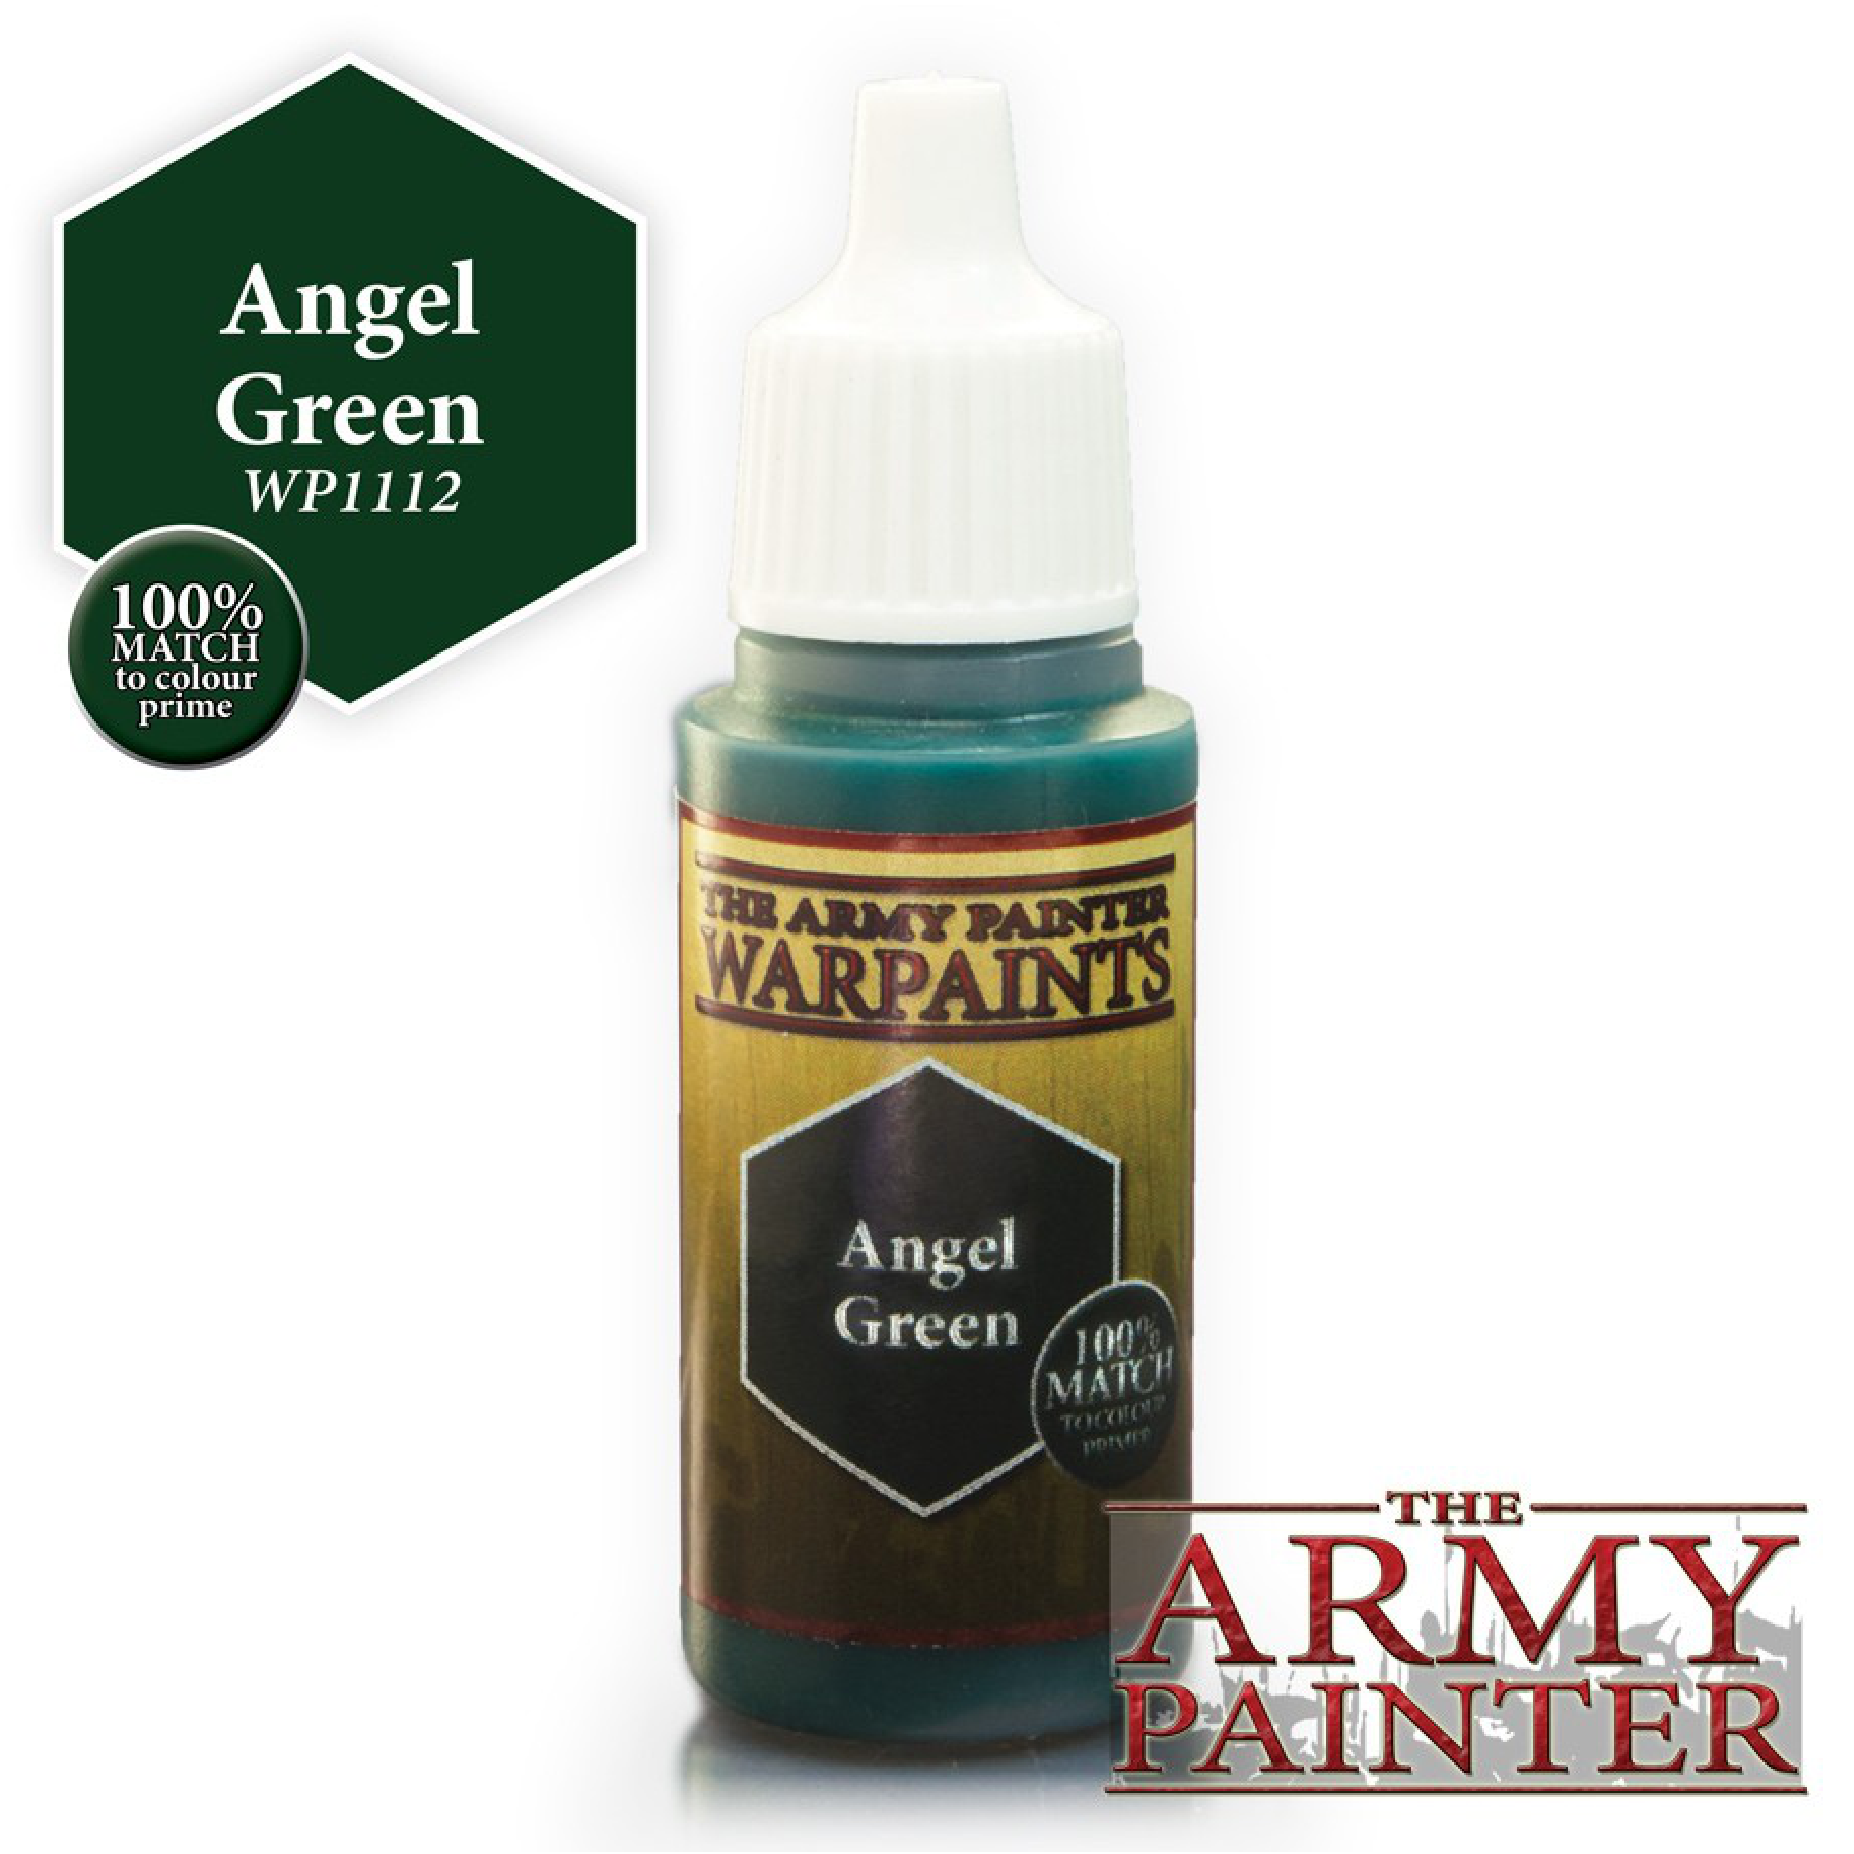 Army Painter Warpaint - Angel Green